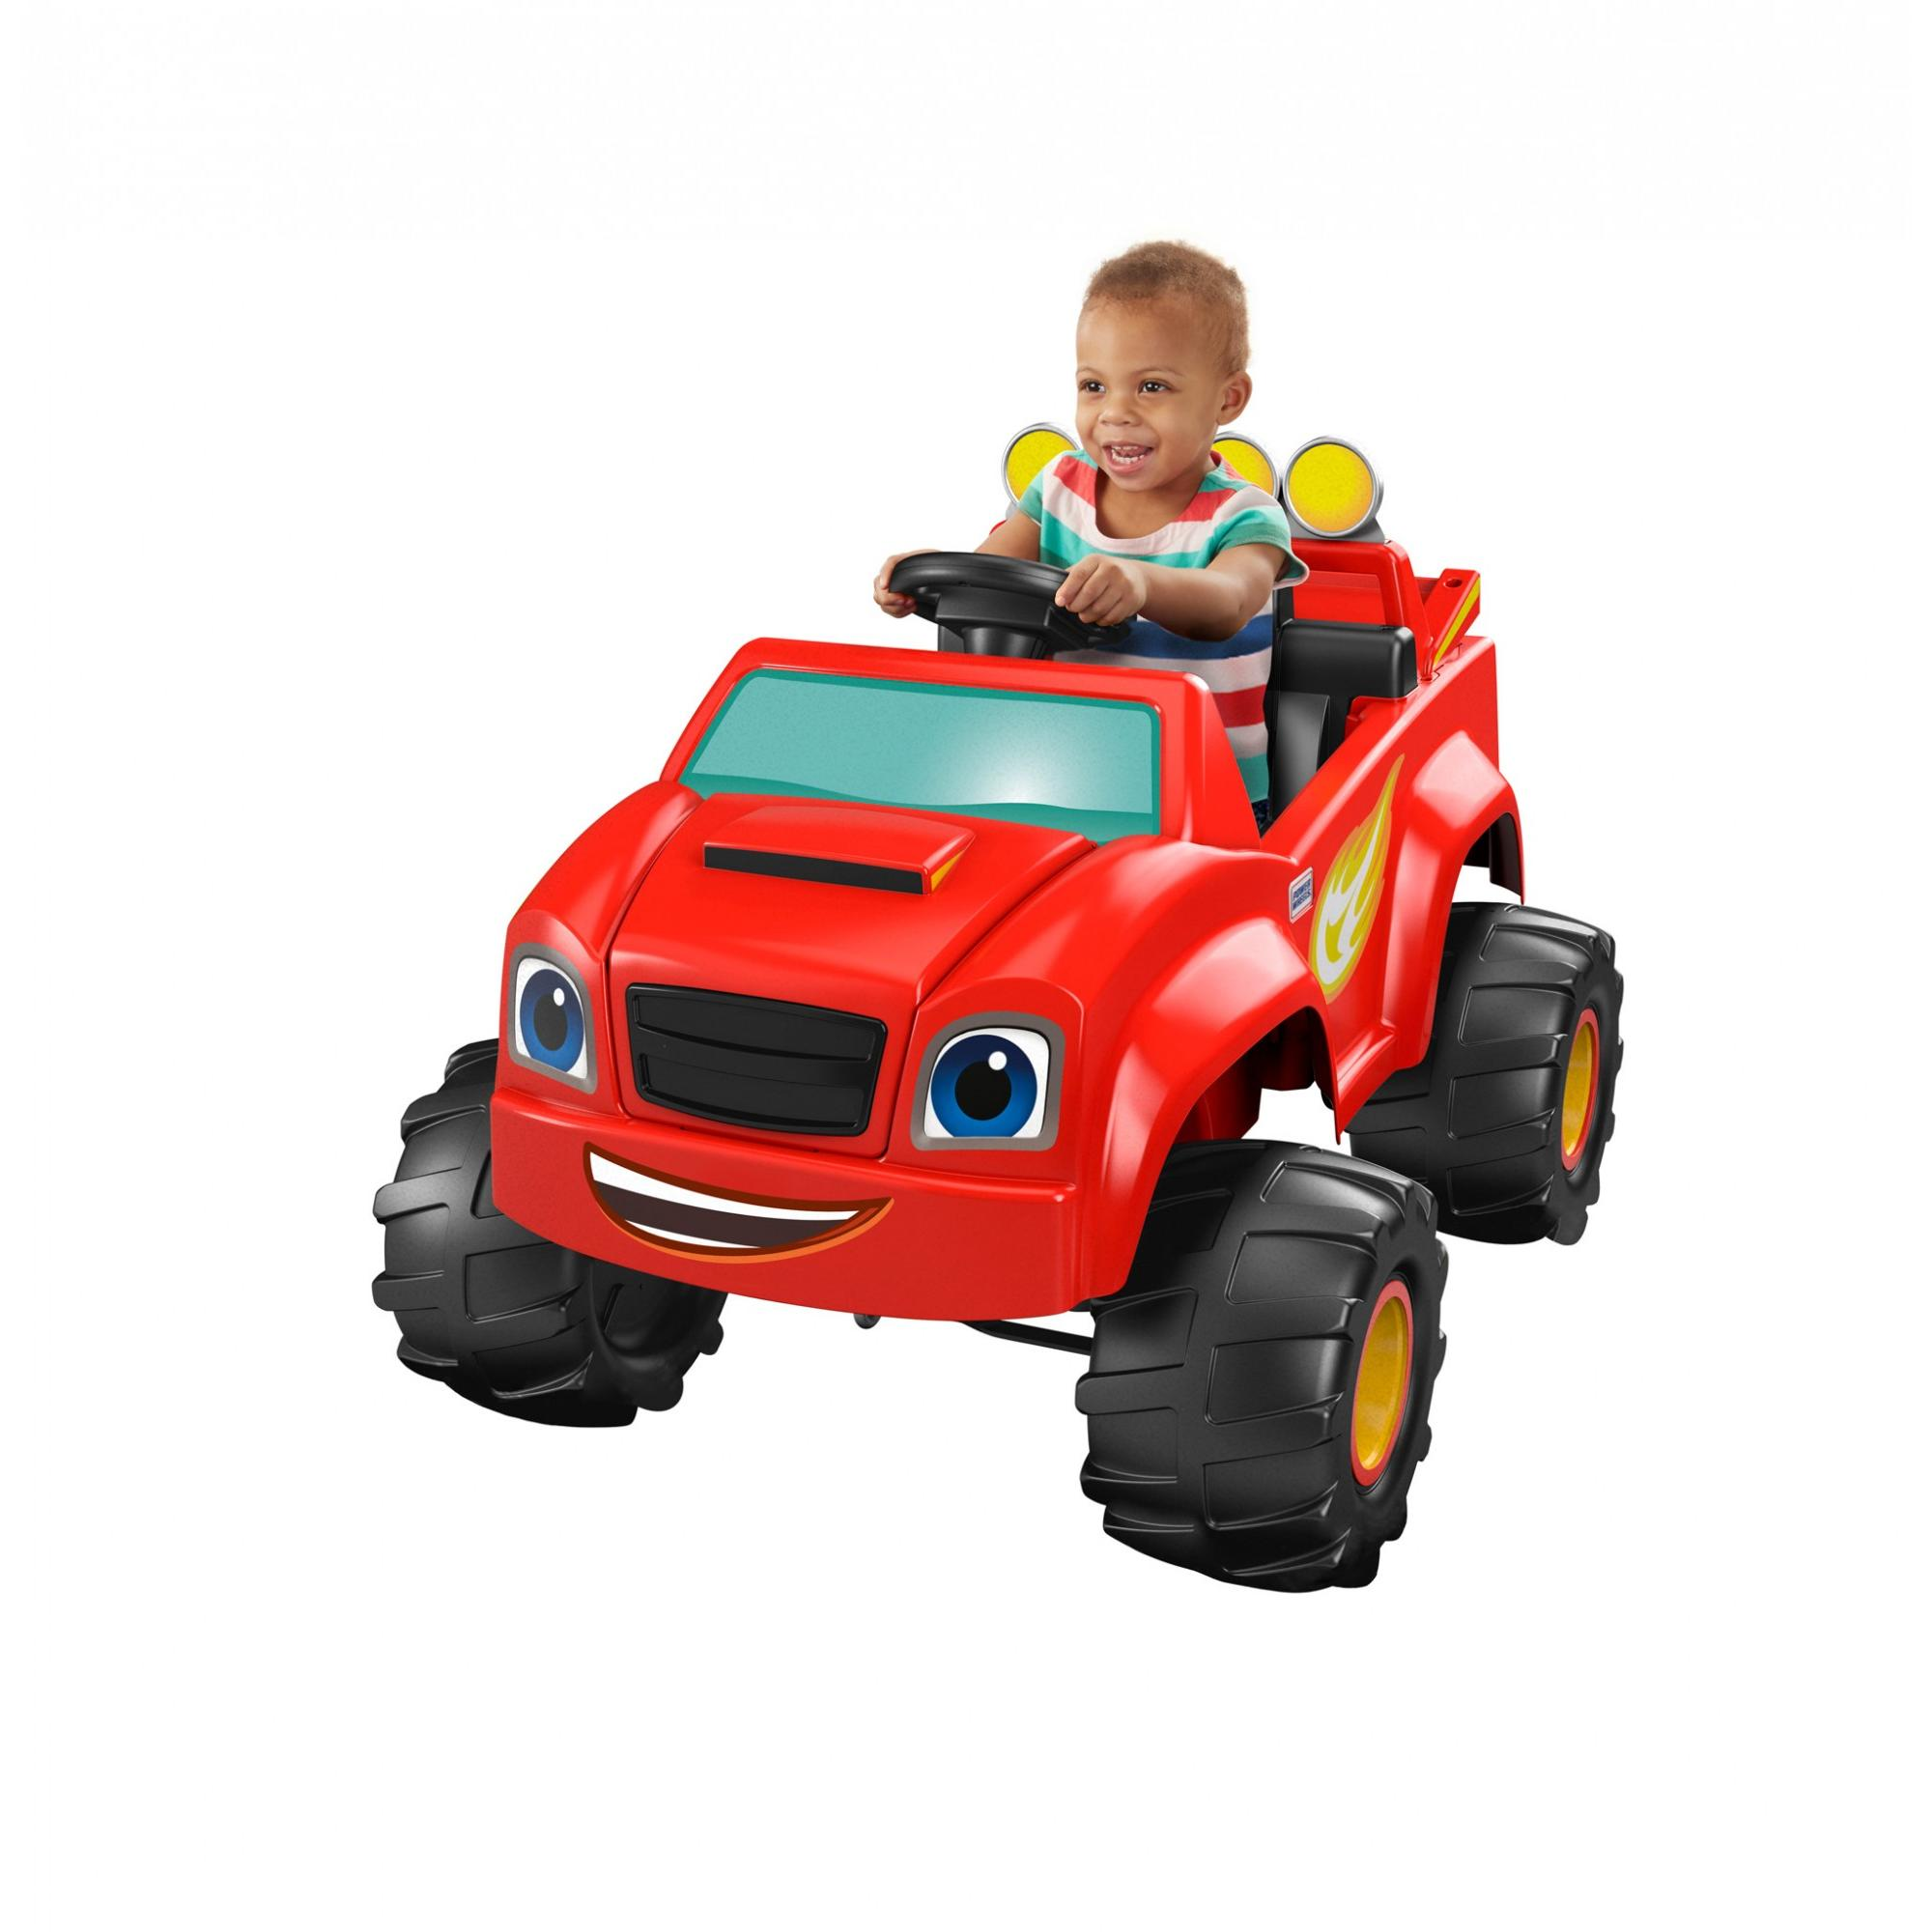 Power Wheels Boys' Nickelodeon Blaze Monster Truck 6V Battery-Powered Ride-On by FISHER PRICE